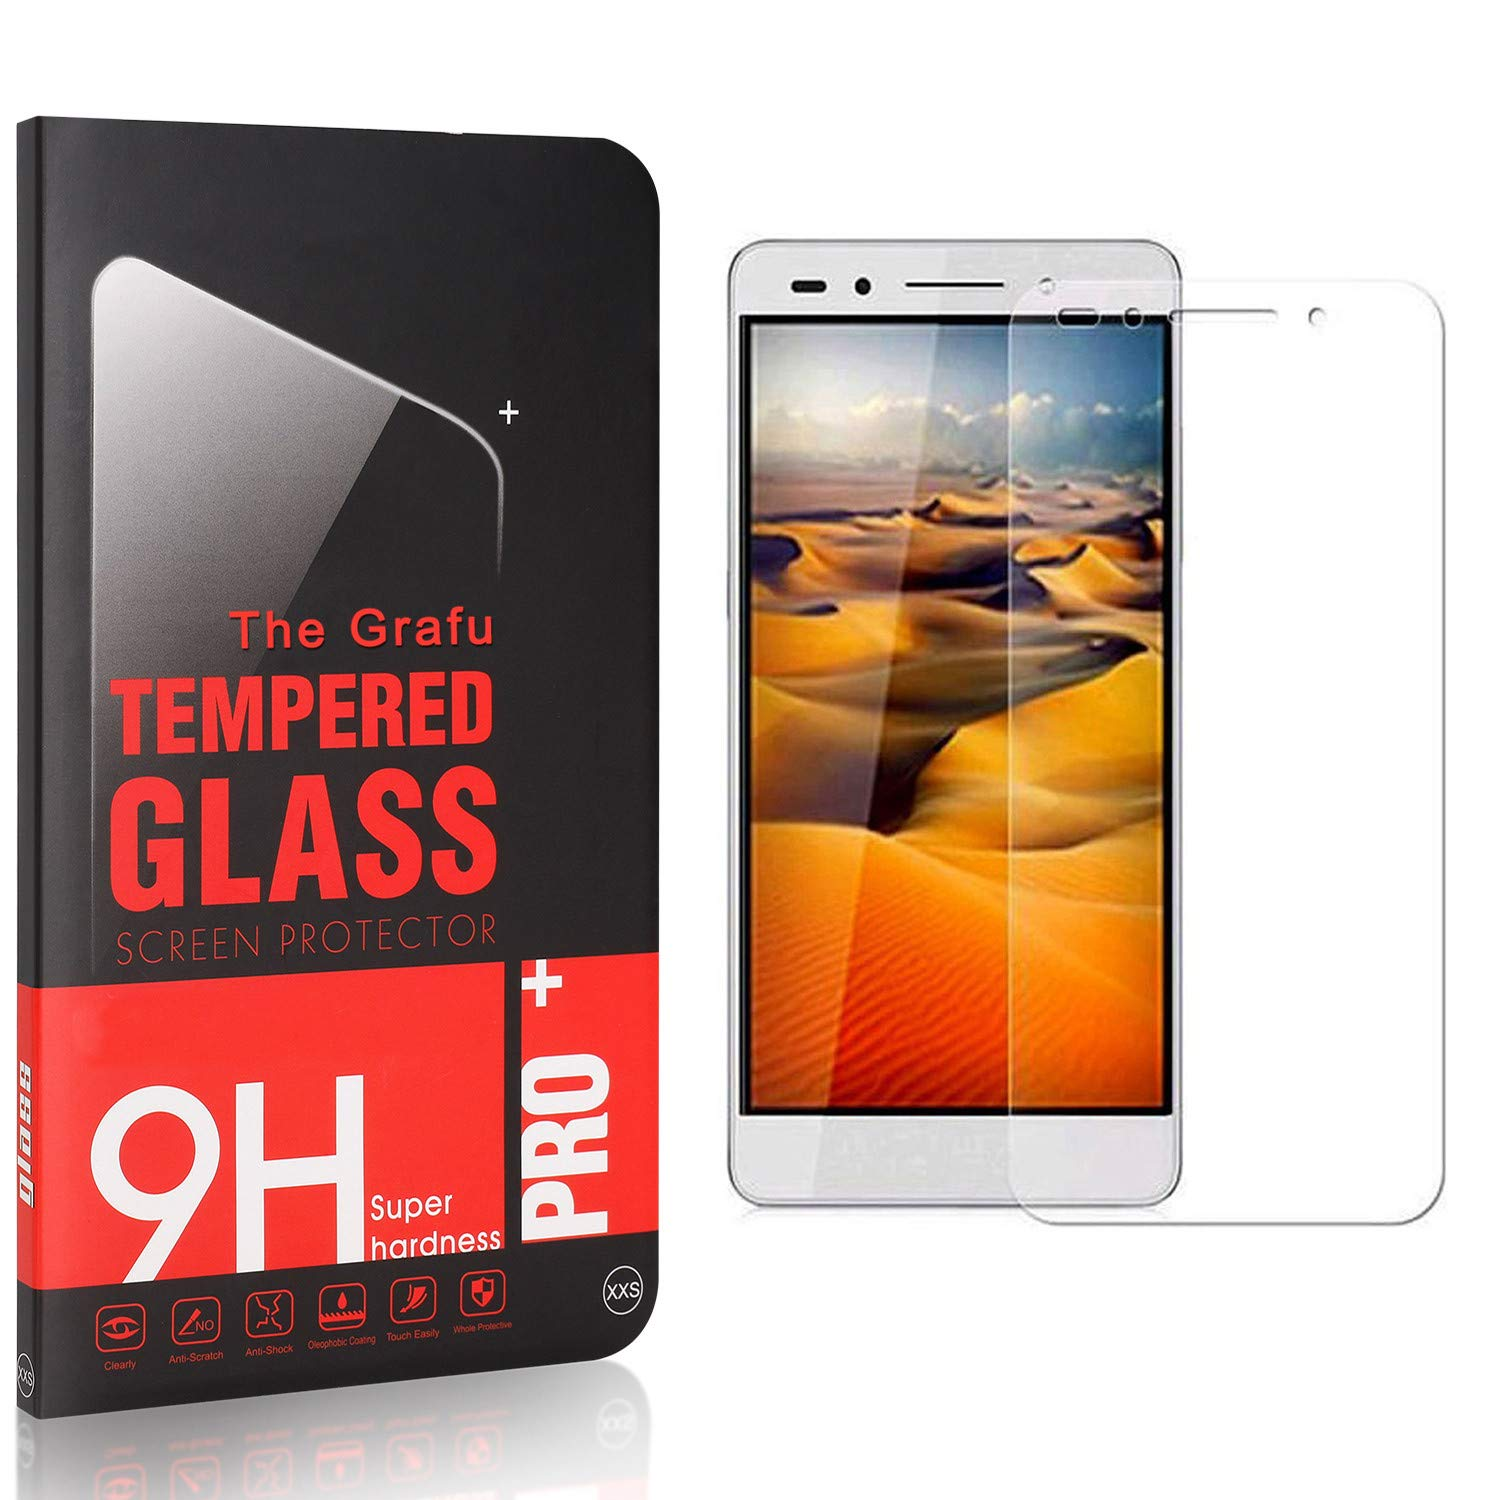 UNEXTATI 9H Tempered Shatterproof Glass Screen Protector Compatible with Huawei Honor 7 3 Pack Screen Protector for Honor 7